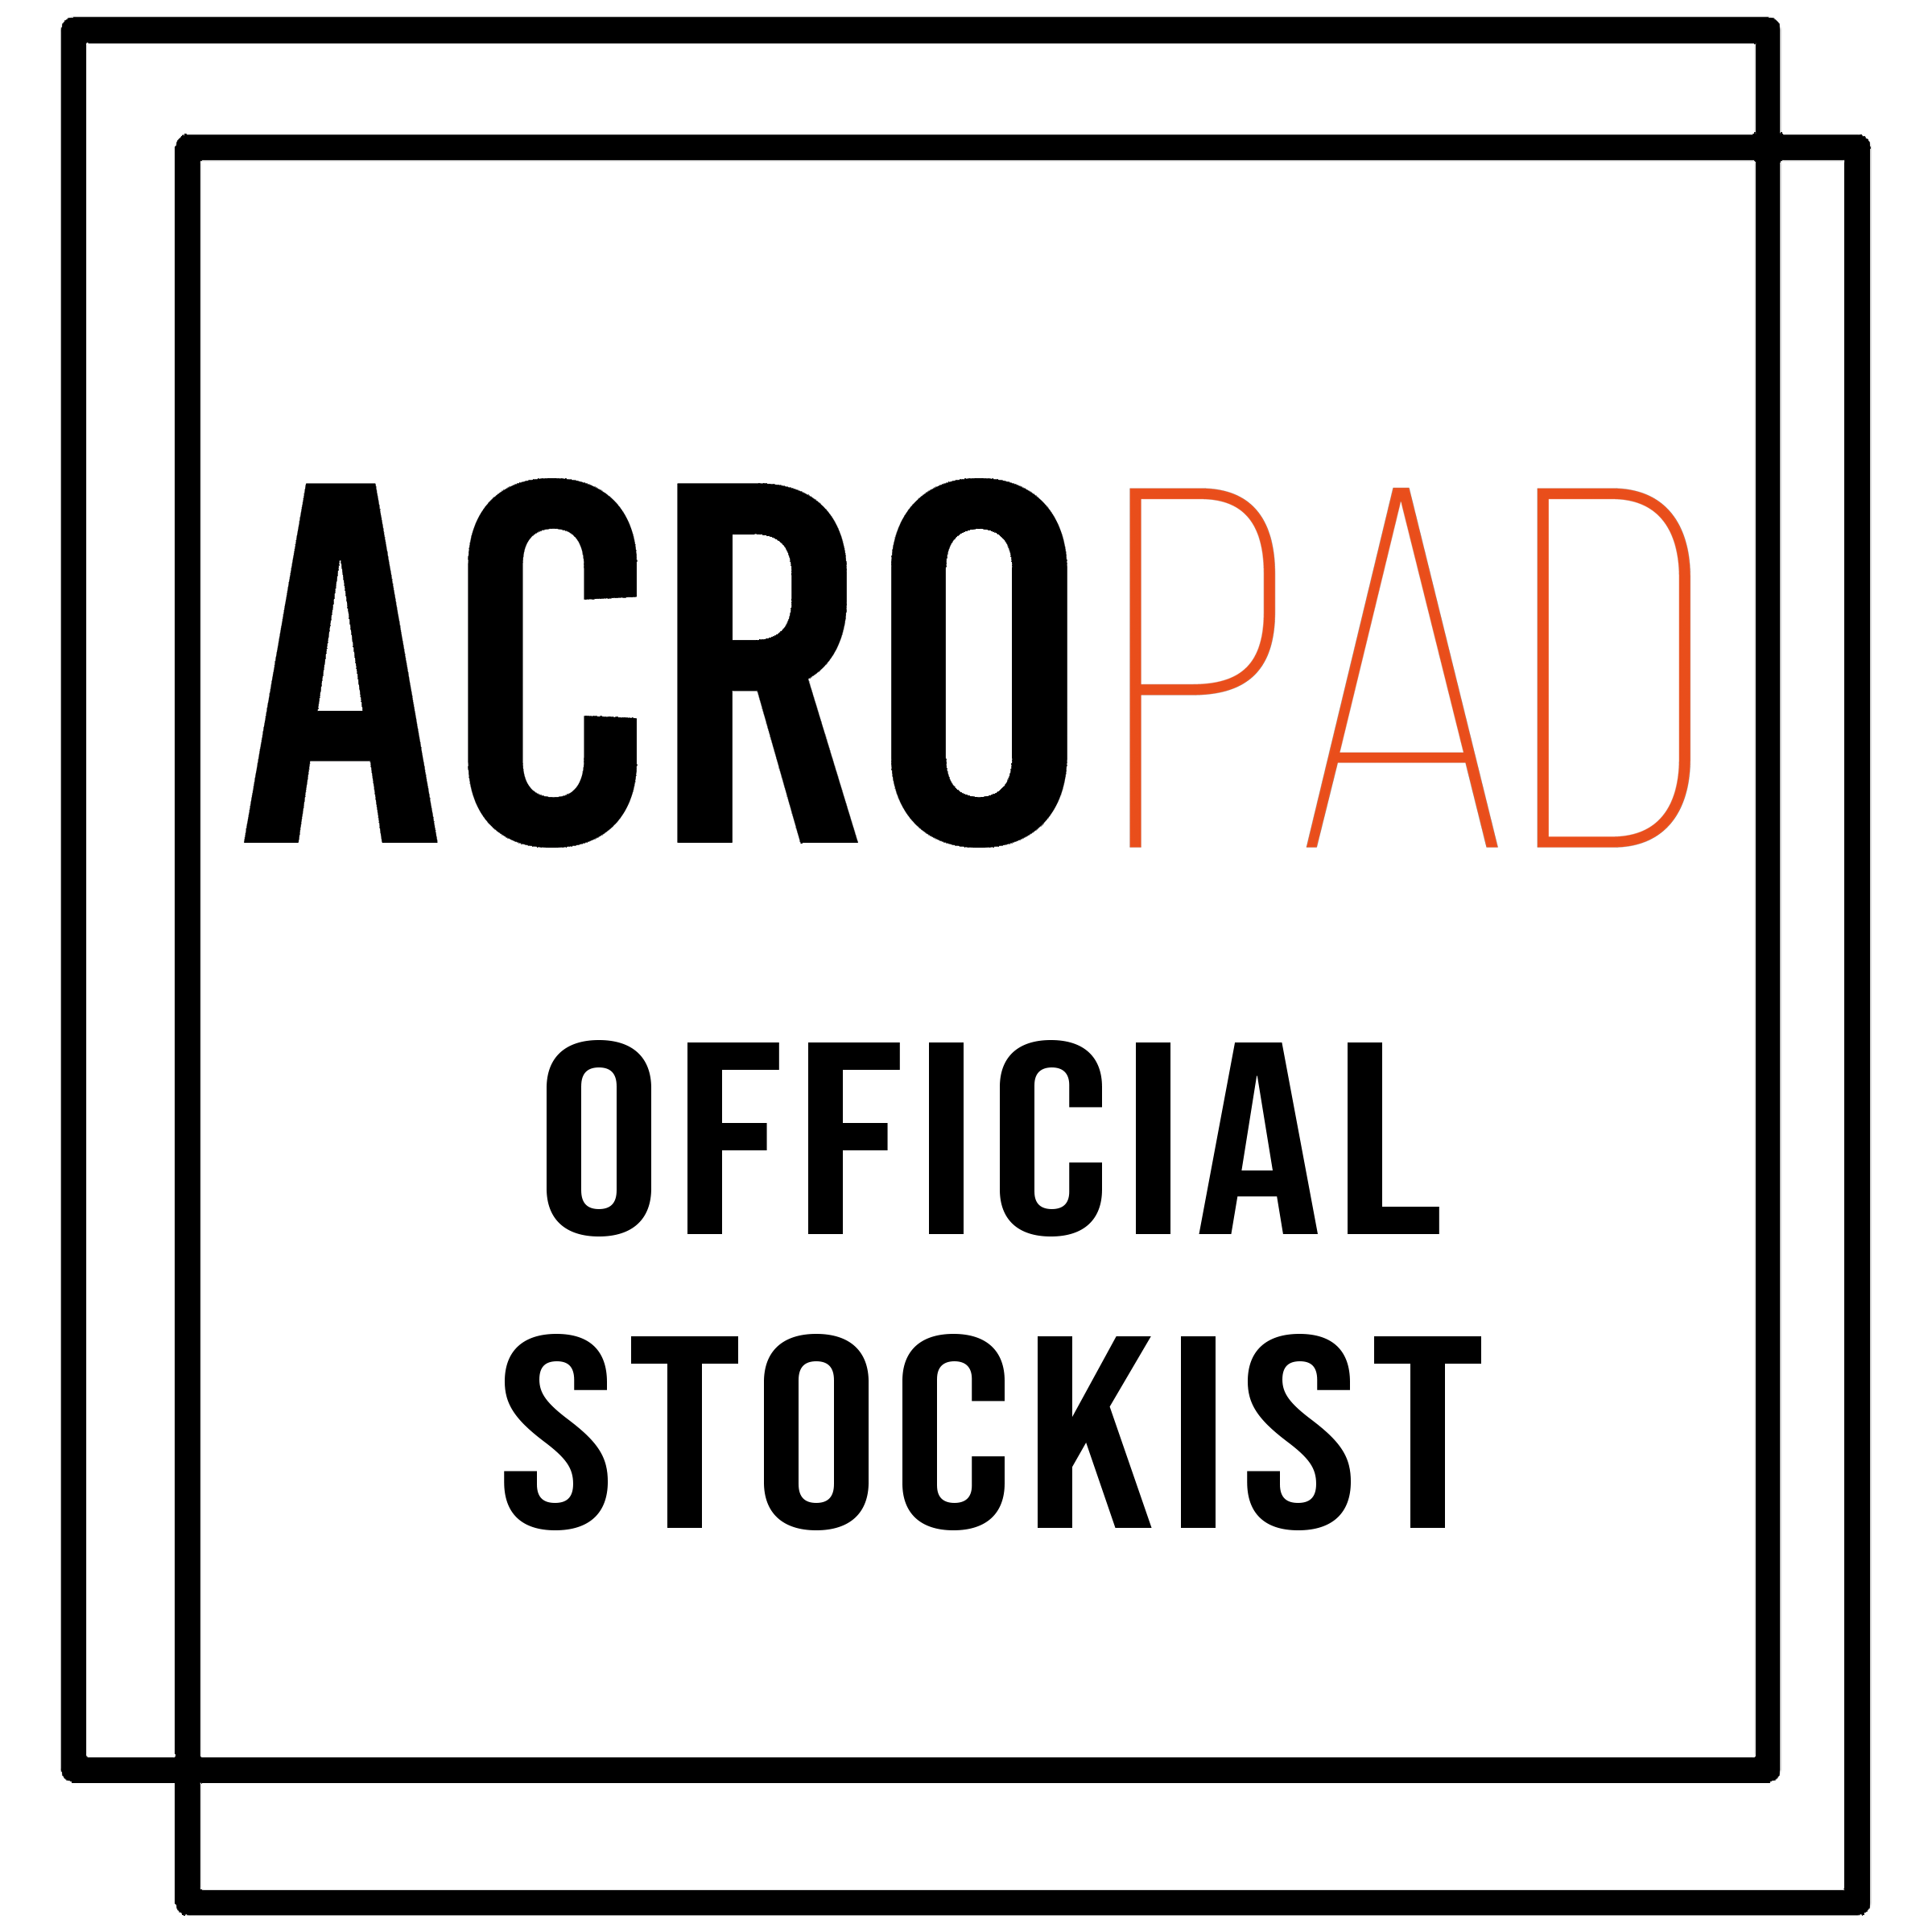 ACROPAD STOCKIST - Home Edition Track - APHE31013m x 1m x 10cm£230 Wholesale inc VAT£395 Recommended RRP inc VAT41.77% profit margin!Must order minimum of 3. Product comes with hand pump, carry bag, repair kit & AcroPAD branded box. Free shipping in the UK!PAYMENT TERMS:1-2 Products - Payment is upfront via BAC or CC3+ Products - 50% upfront & 50% 30 days after thatSHIPPING & REPEAT ORDERS:1 Product - Shipping is only £203+ Products - Shipping is FREE!